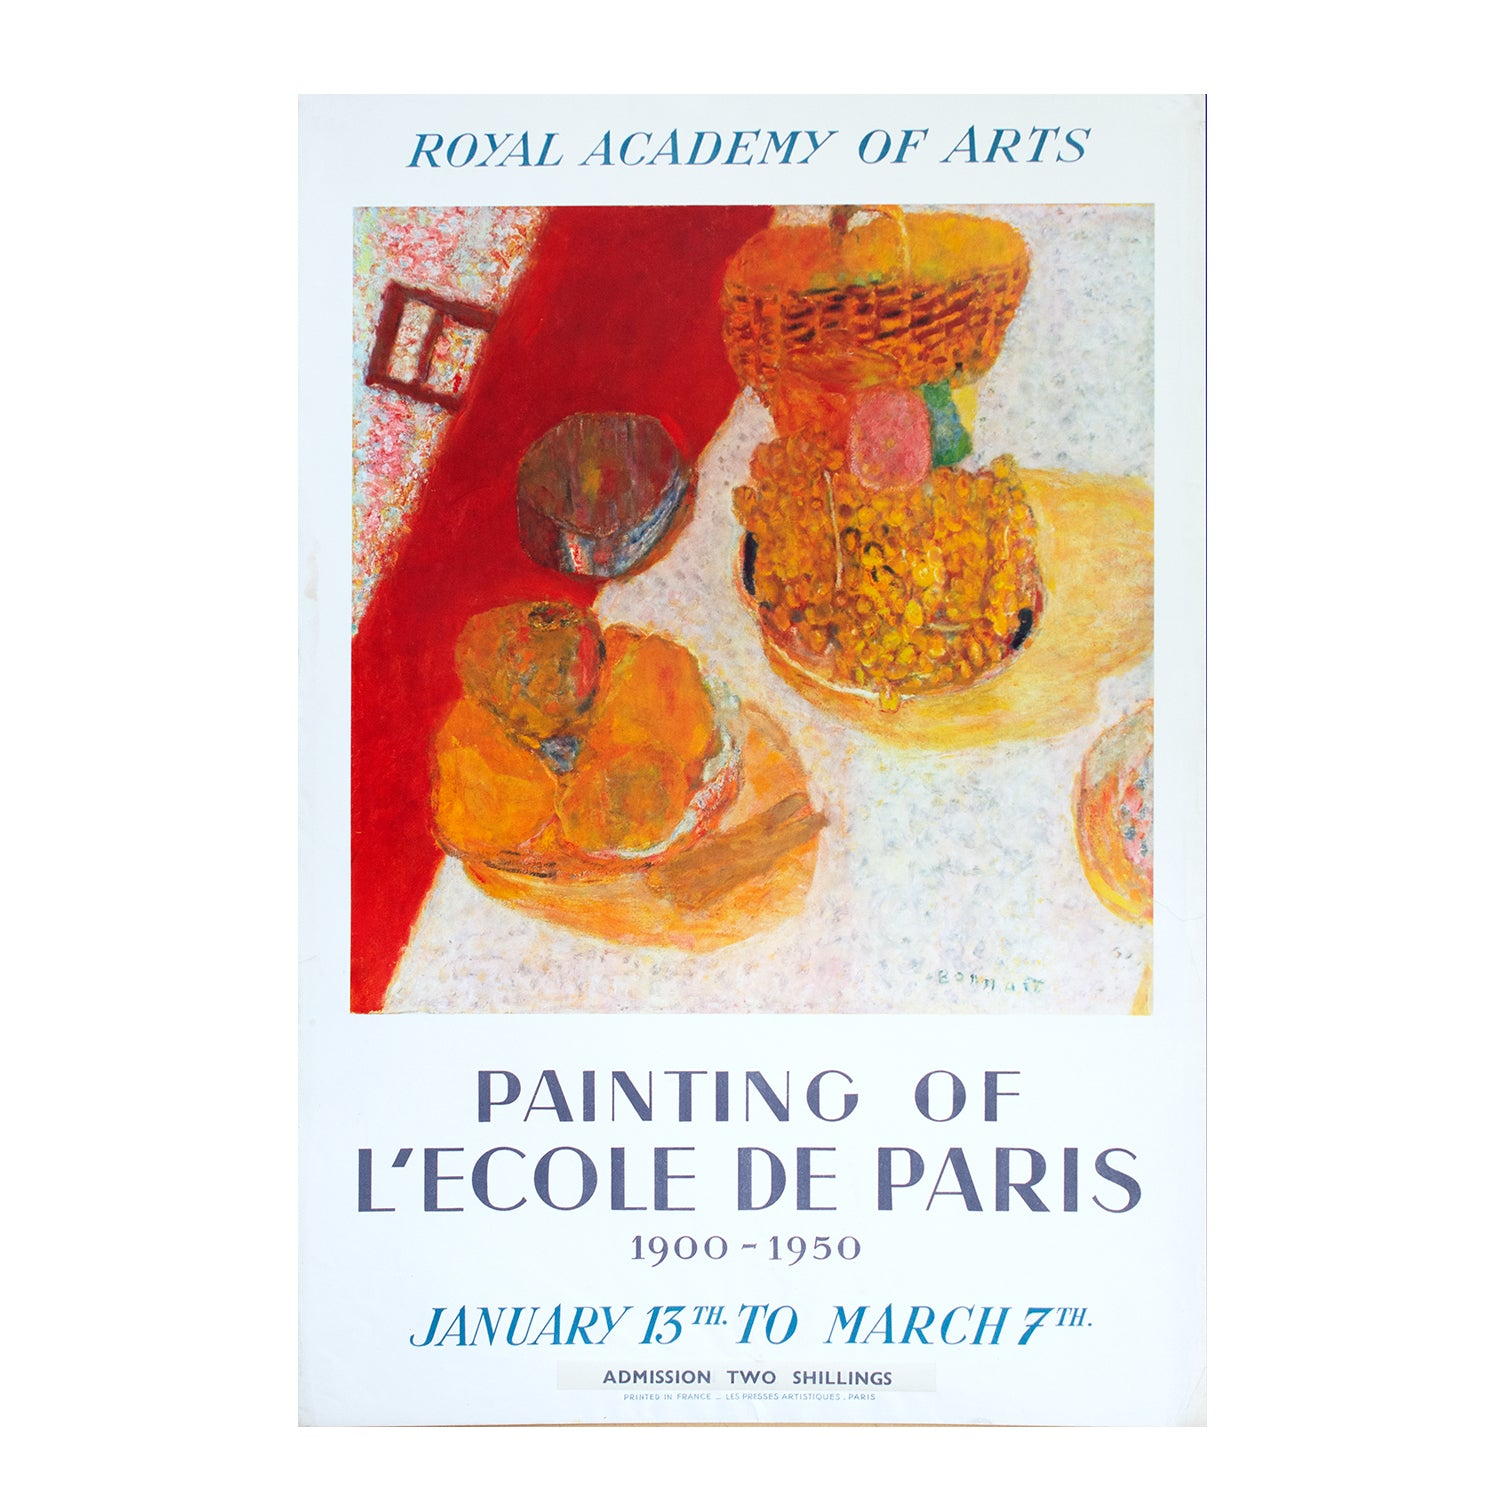 Paintings of L'Ecole de Paris 1900-1950. Exhibition